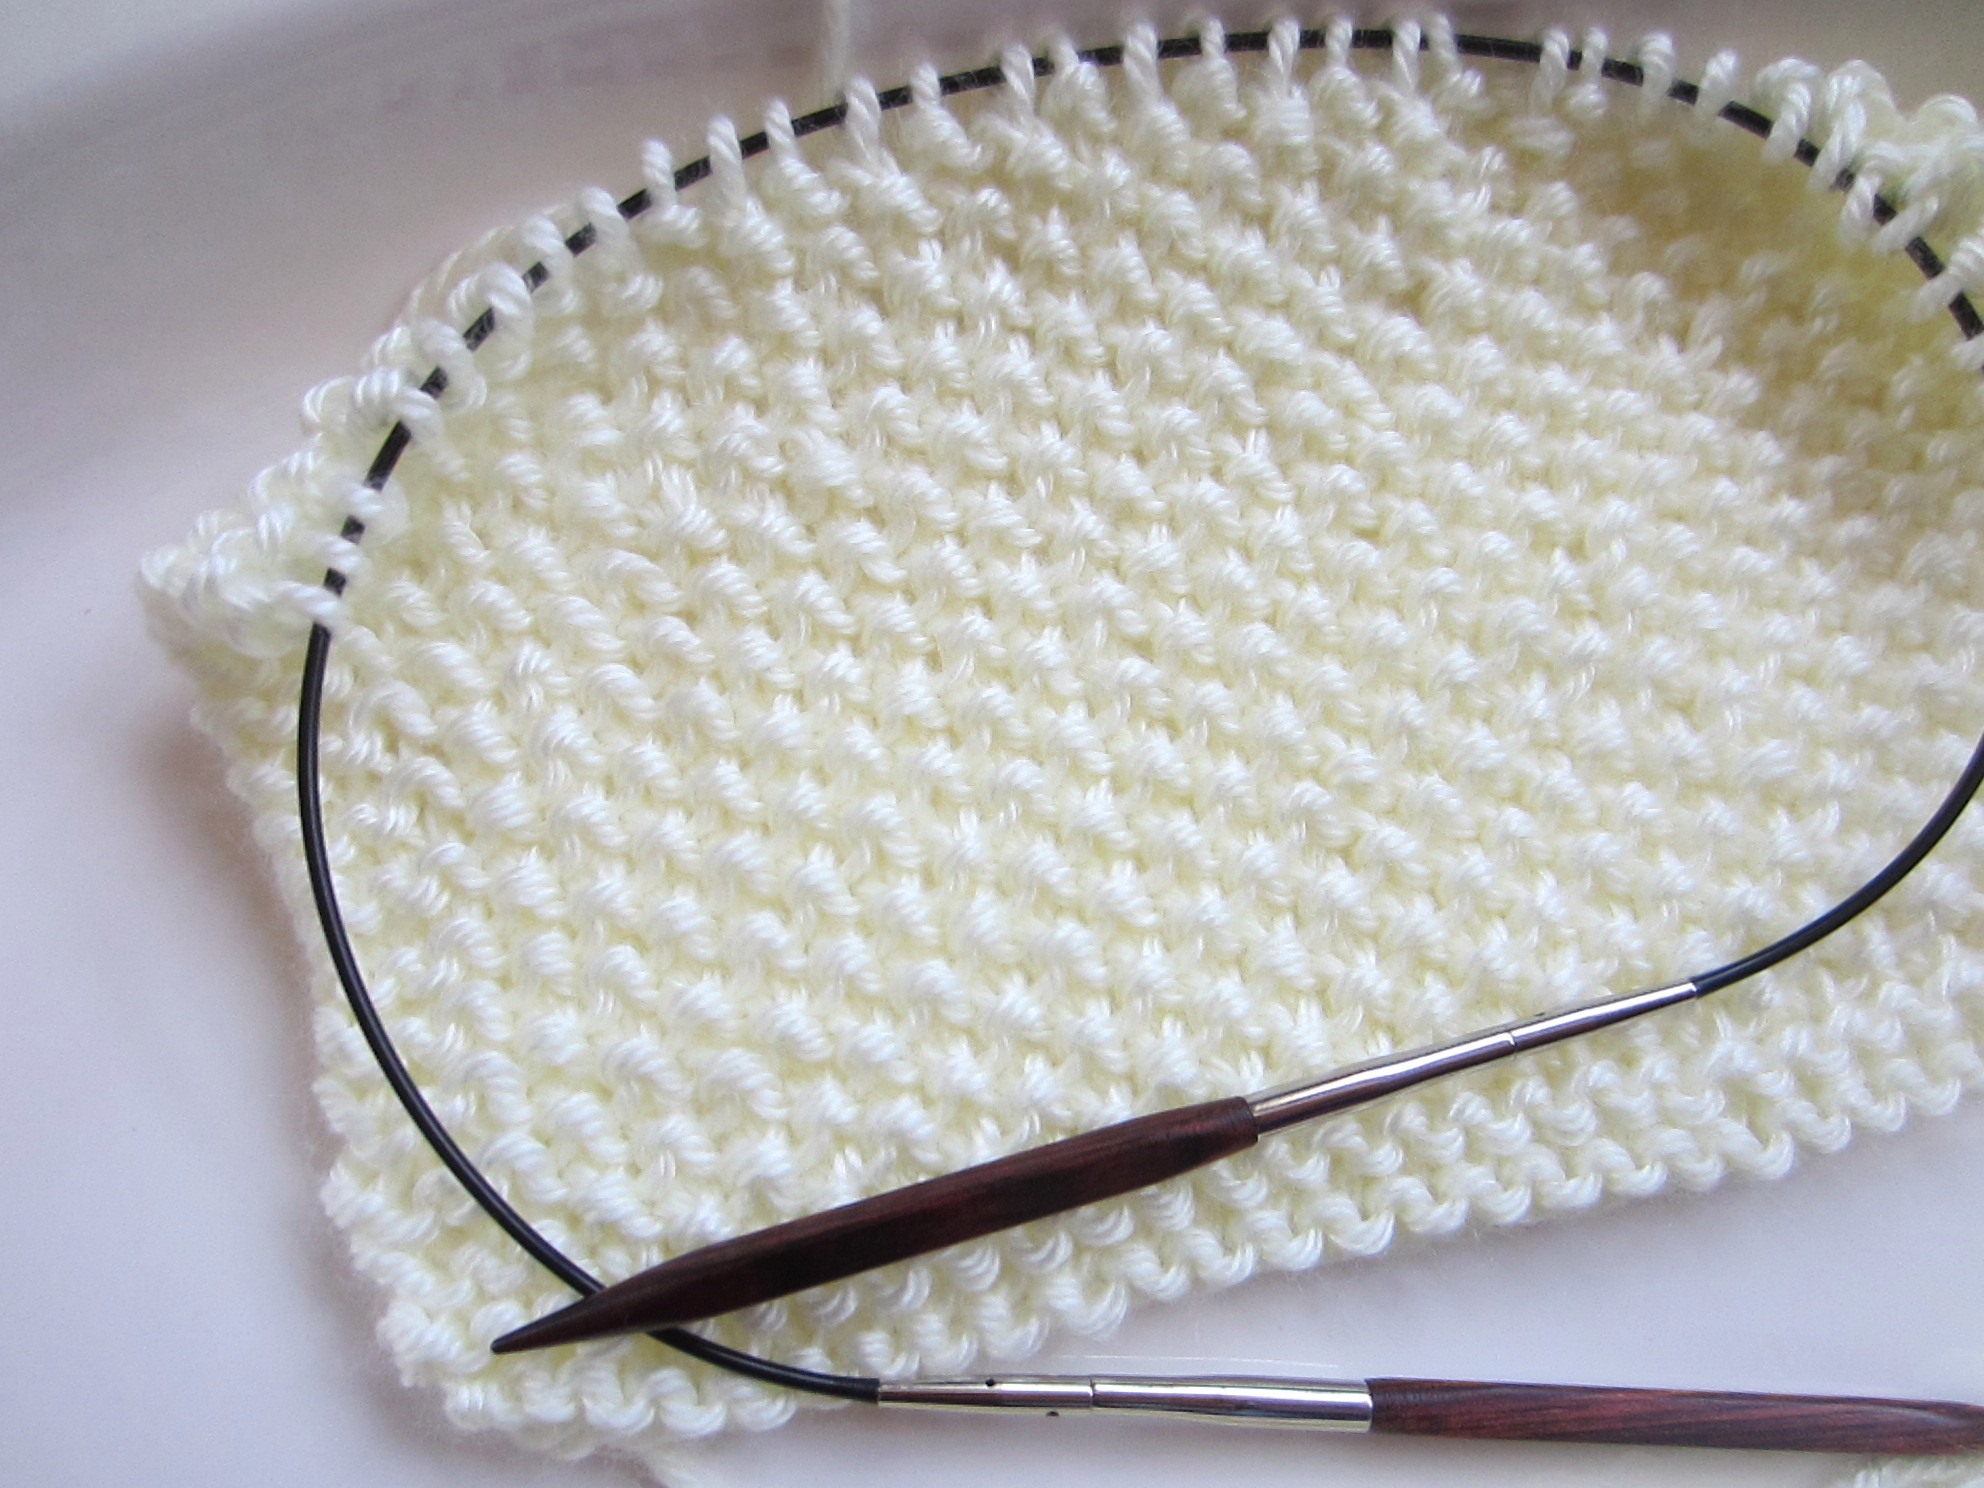 Crochet And Knitting : ... Hands - Adventures in Crochet and Knit Along My Creative Journey